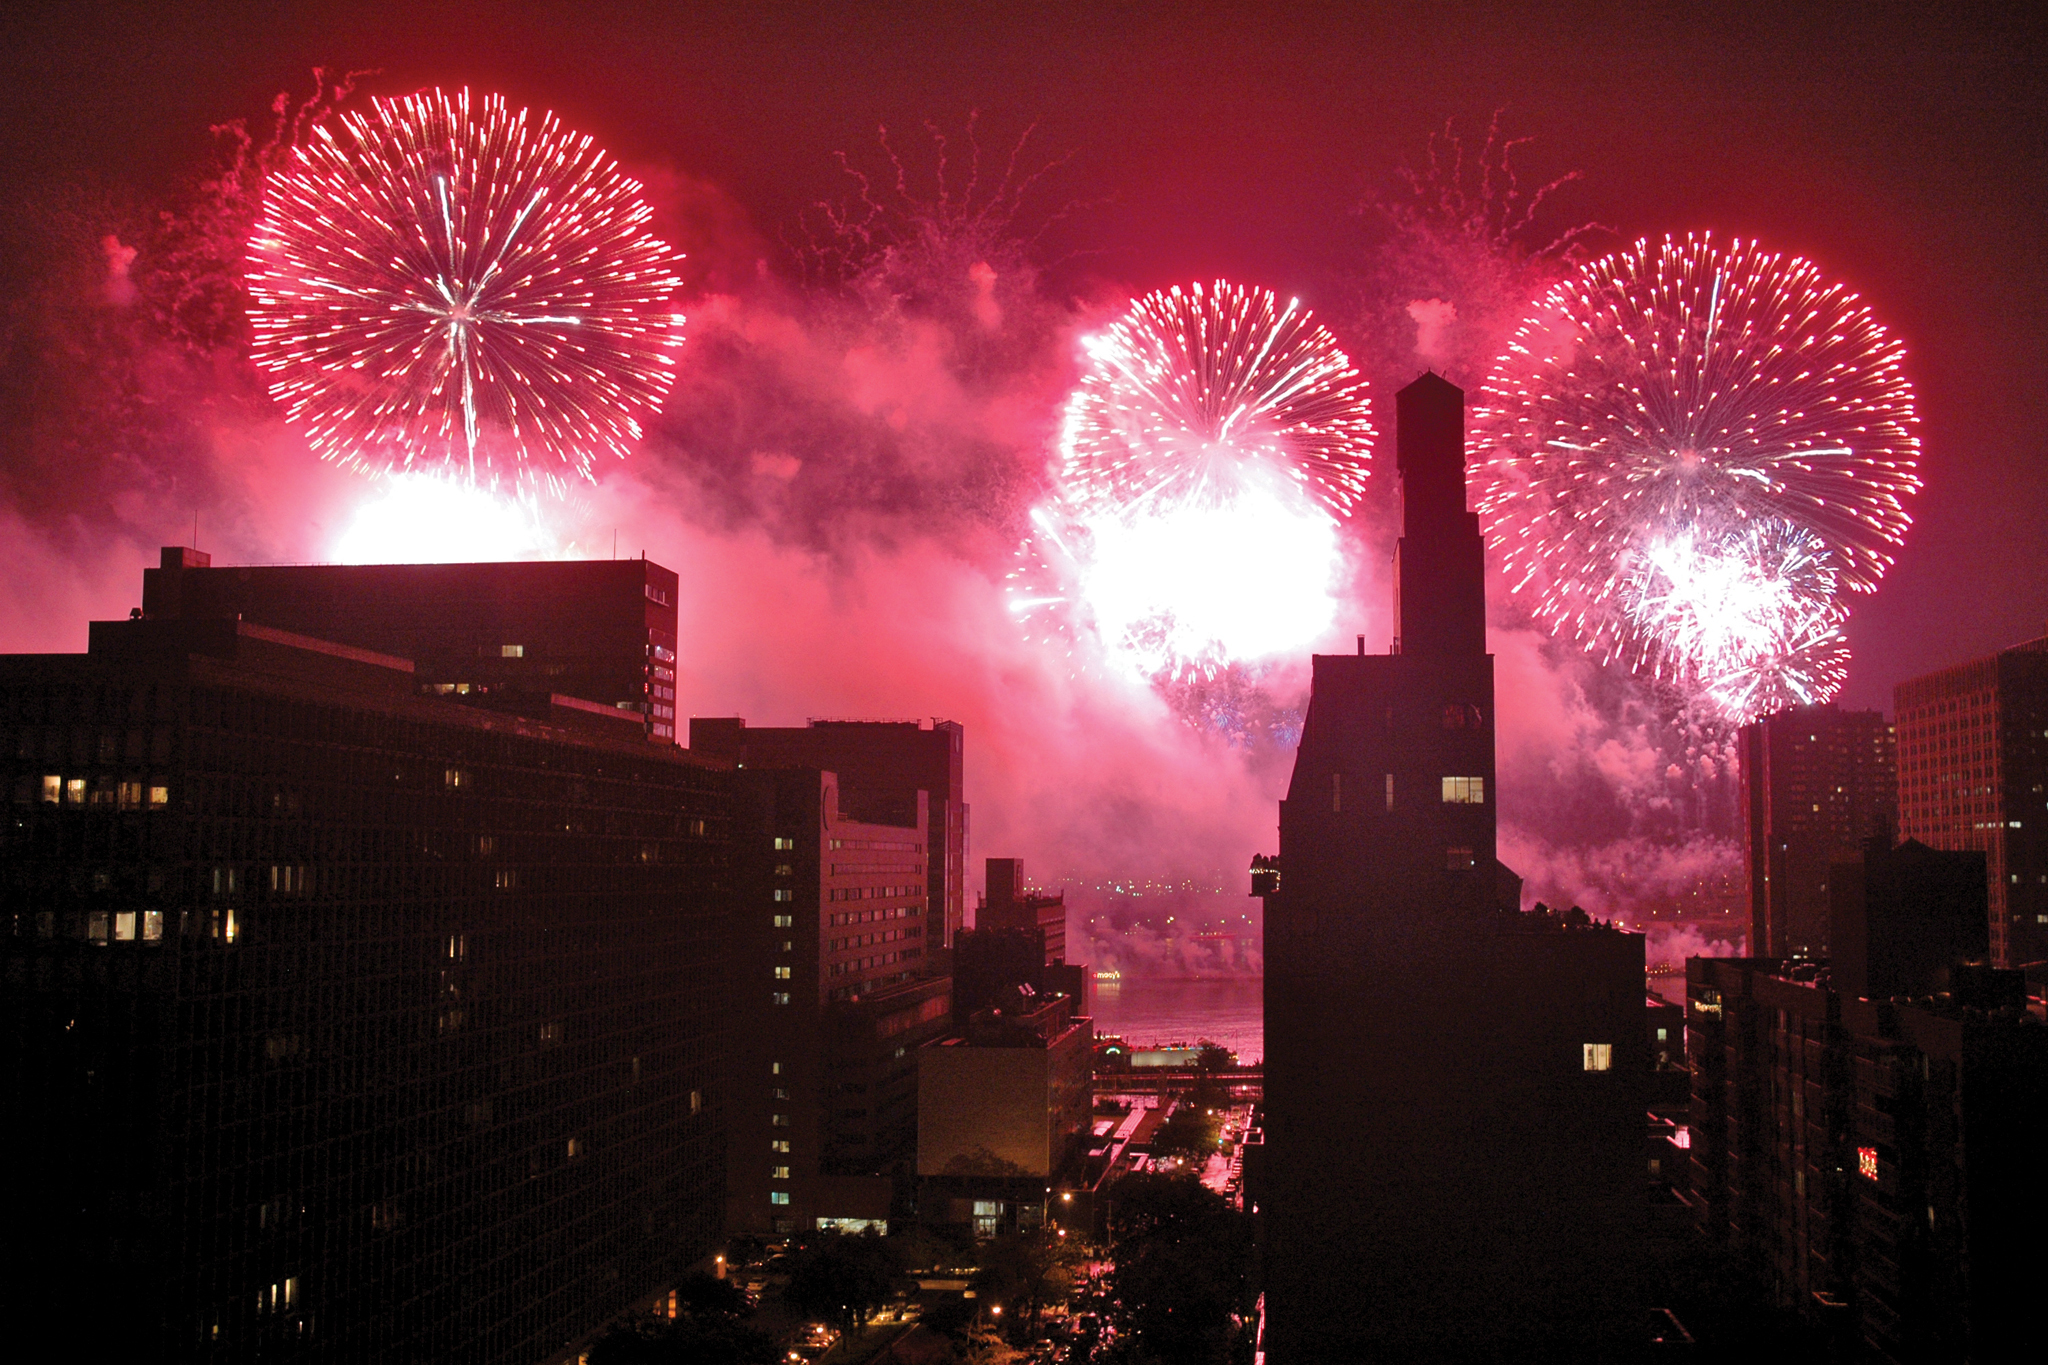 Then see what Usher does with the Macy's Fourth of July Fireworks